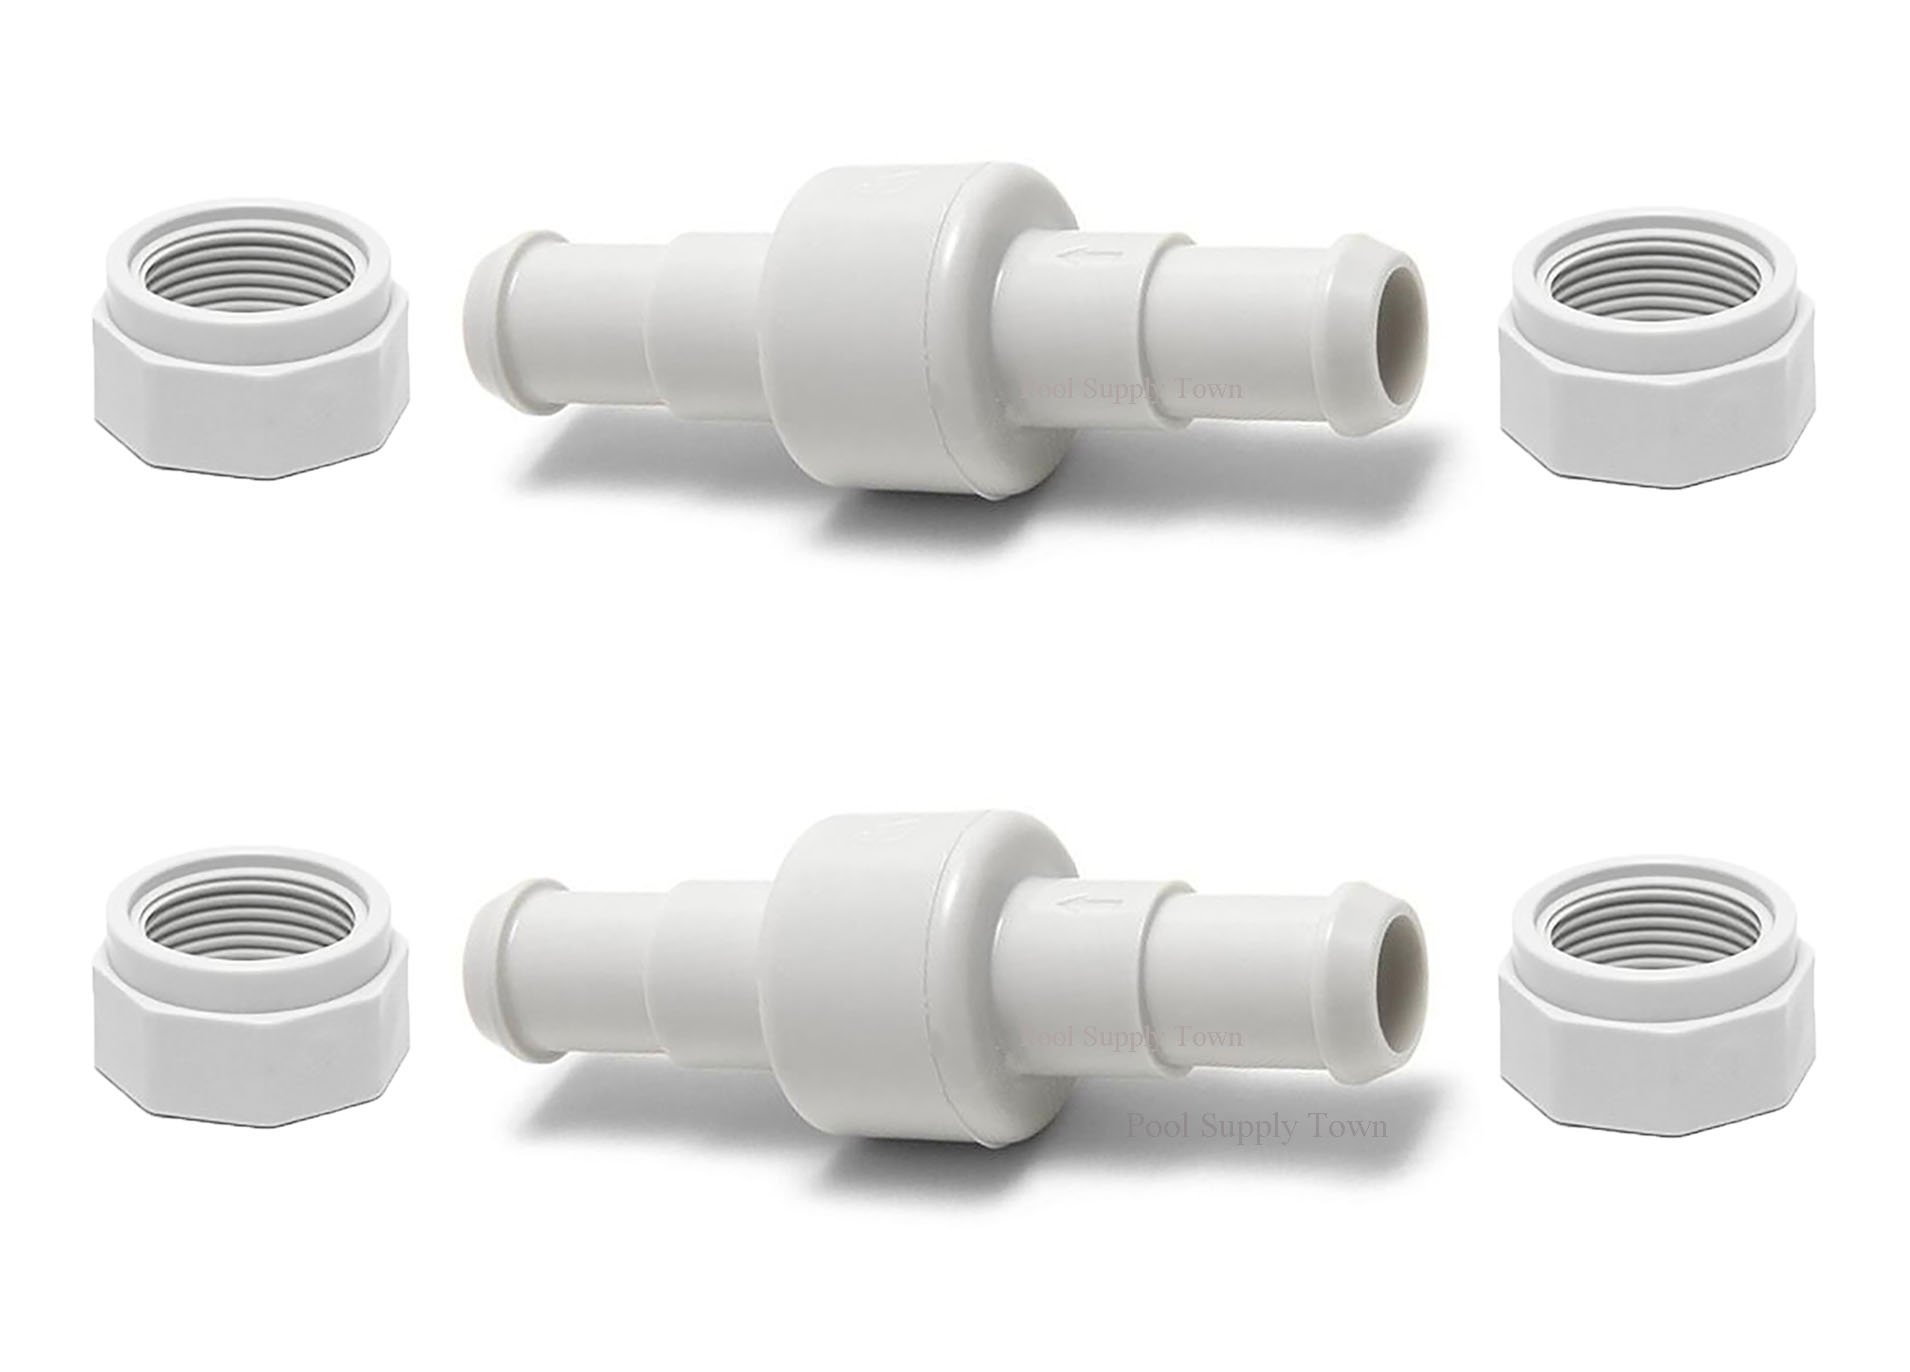 ATIE PoolSupplyTown 280 Hose Swivel and Hose Nut Kit Replace Polaris 280, 380, 180 Pool Cleaner Hose Swivel D20 and Hose Nut D15 (2 Pack) by ATIE